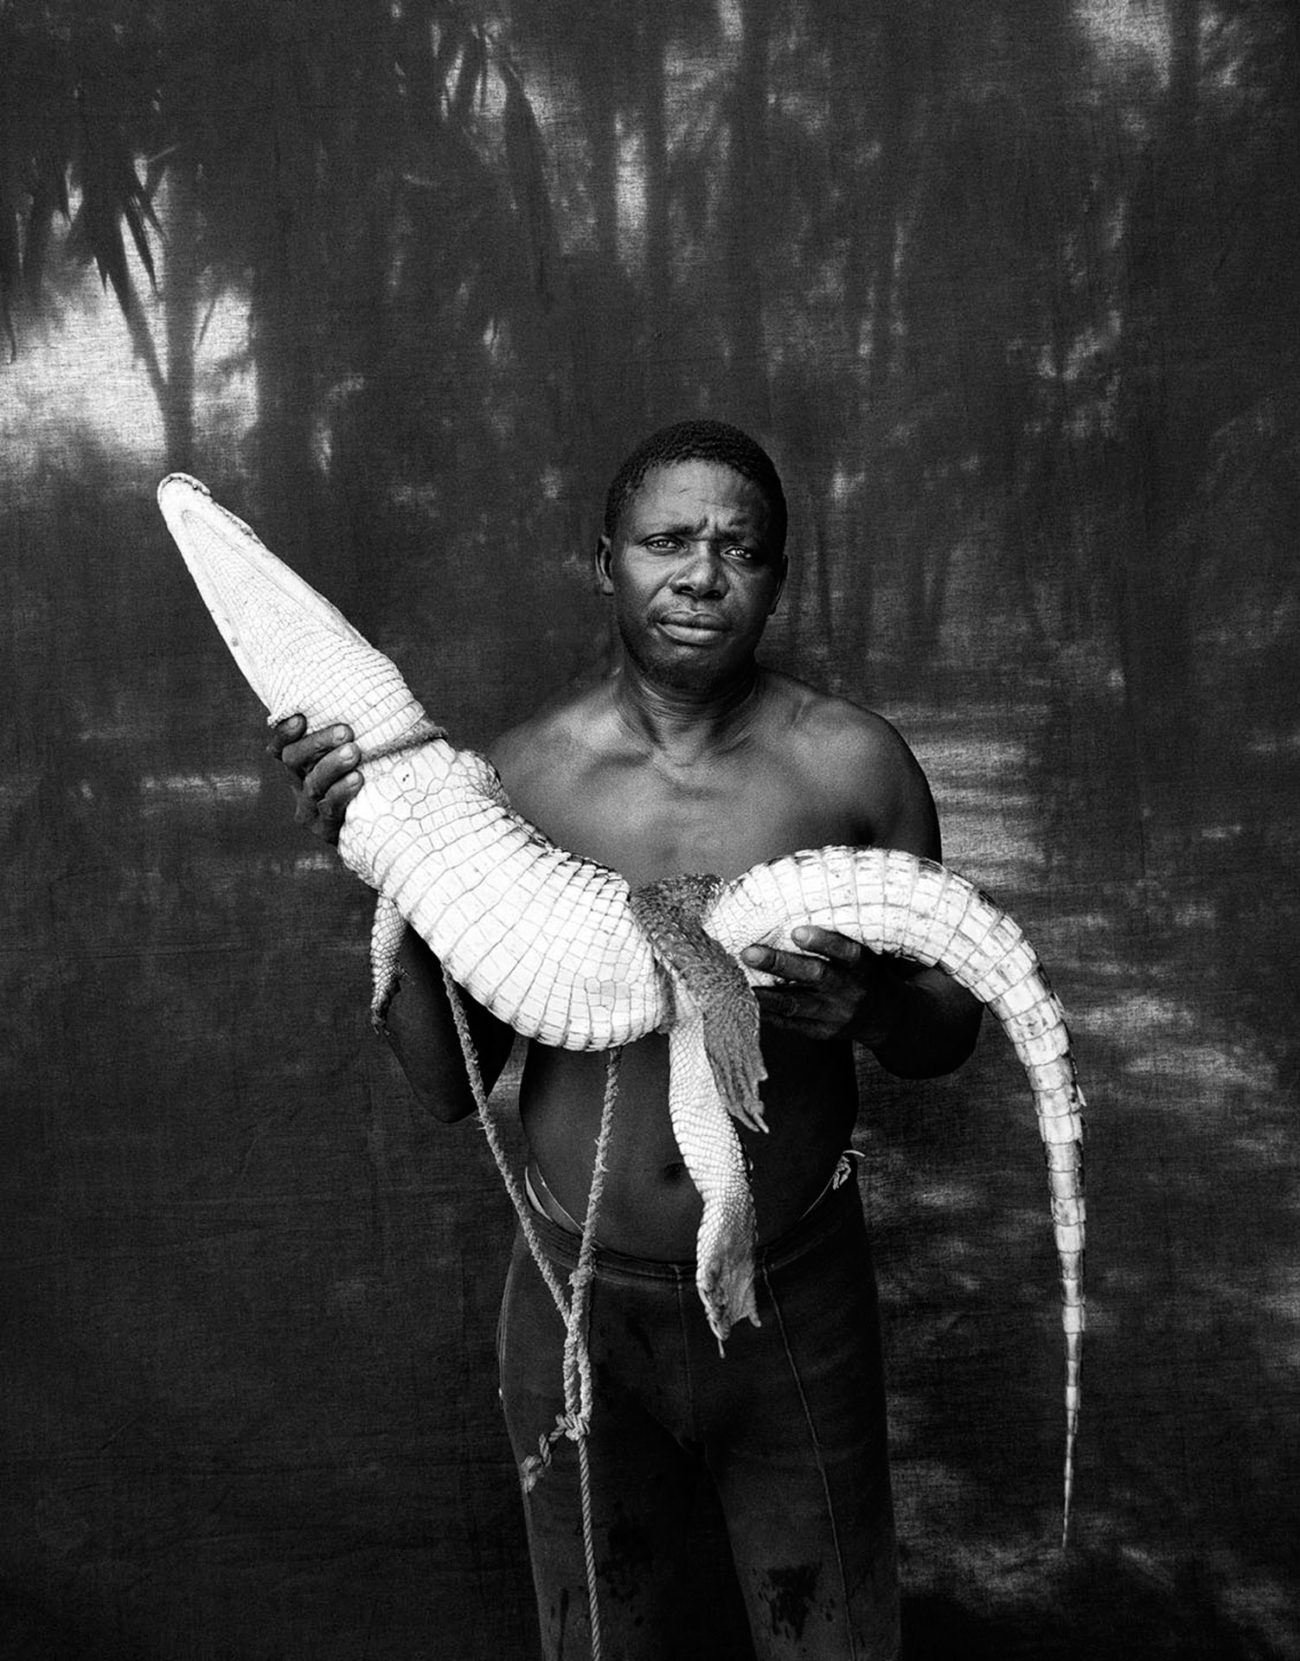 The black backdrop - Abdou with Rescued Crocodile, The Gambia, West Africa.BW ©Jason Florio -portrait from Makasutu series, against black cloth background